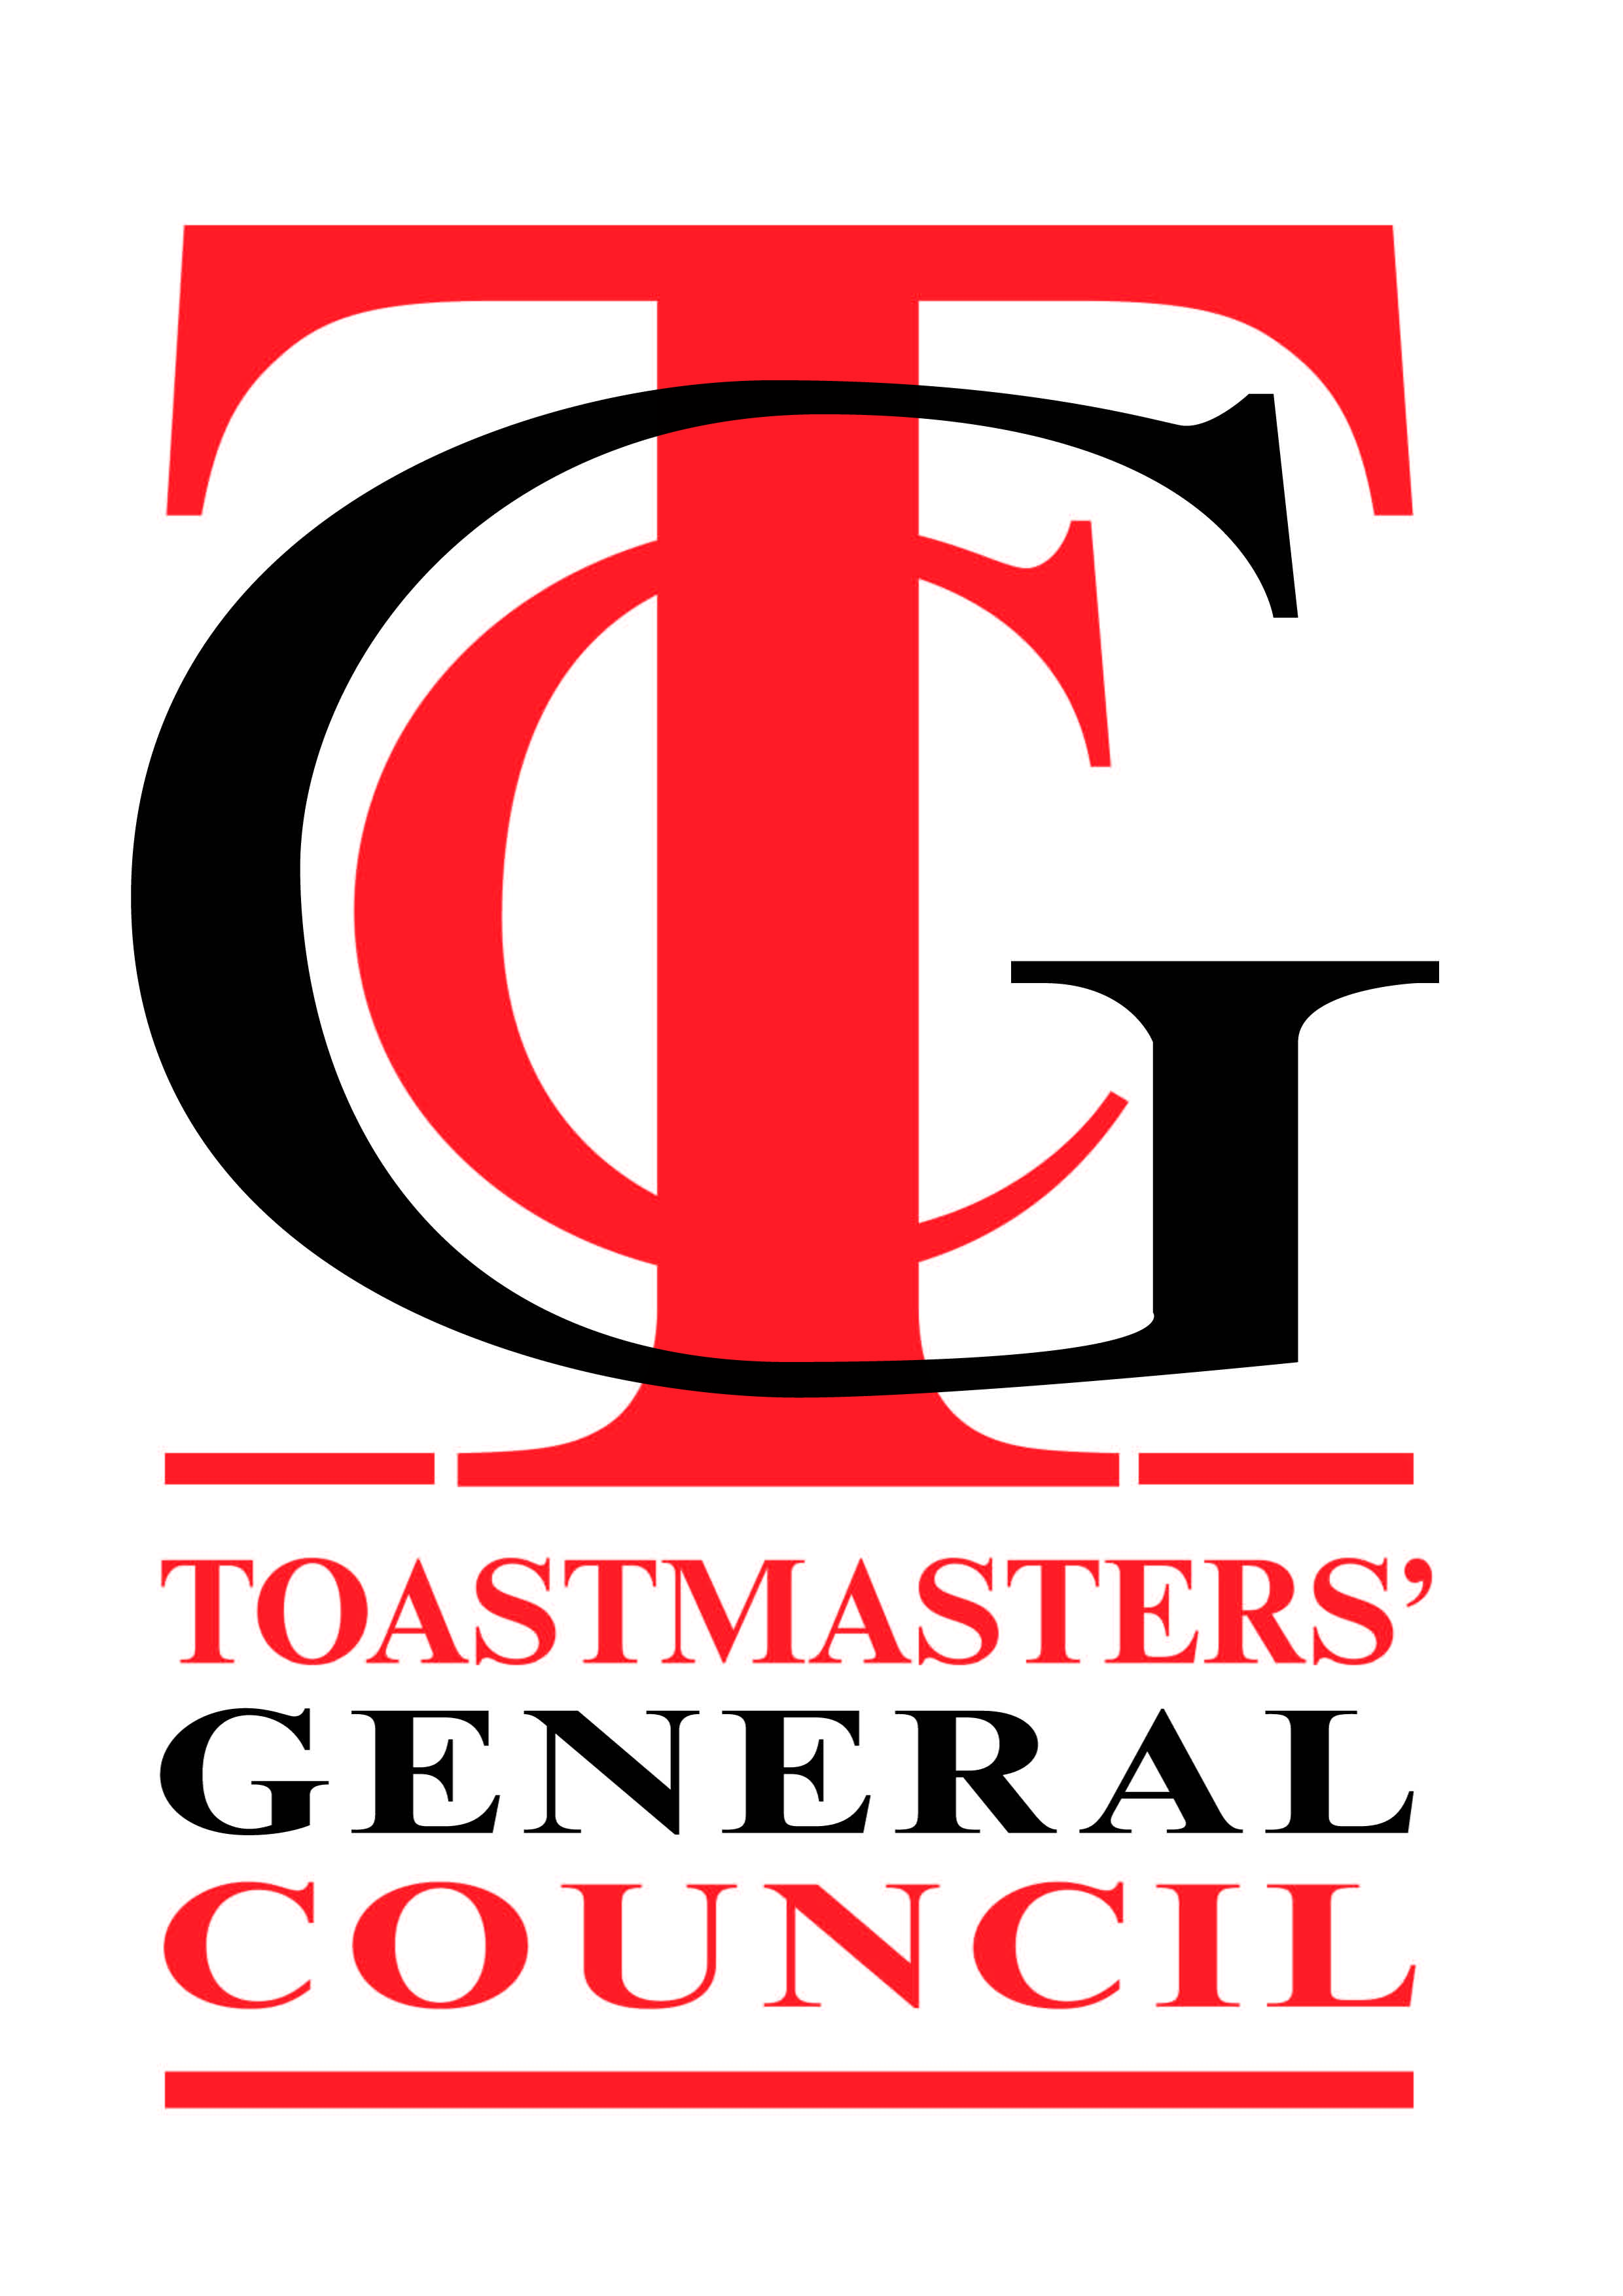 Toastmasters' General Council